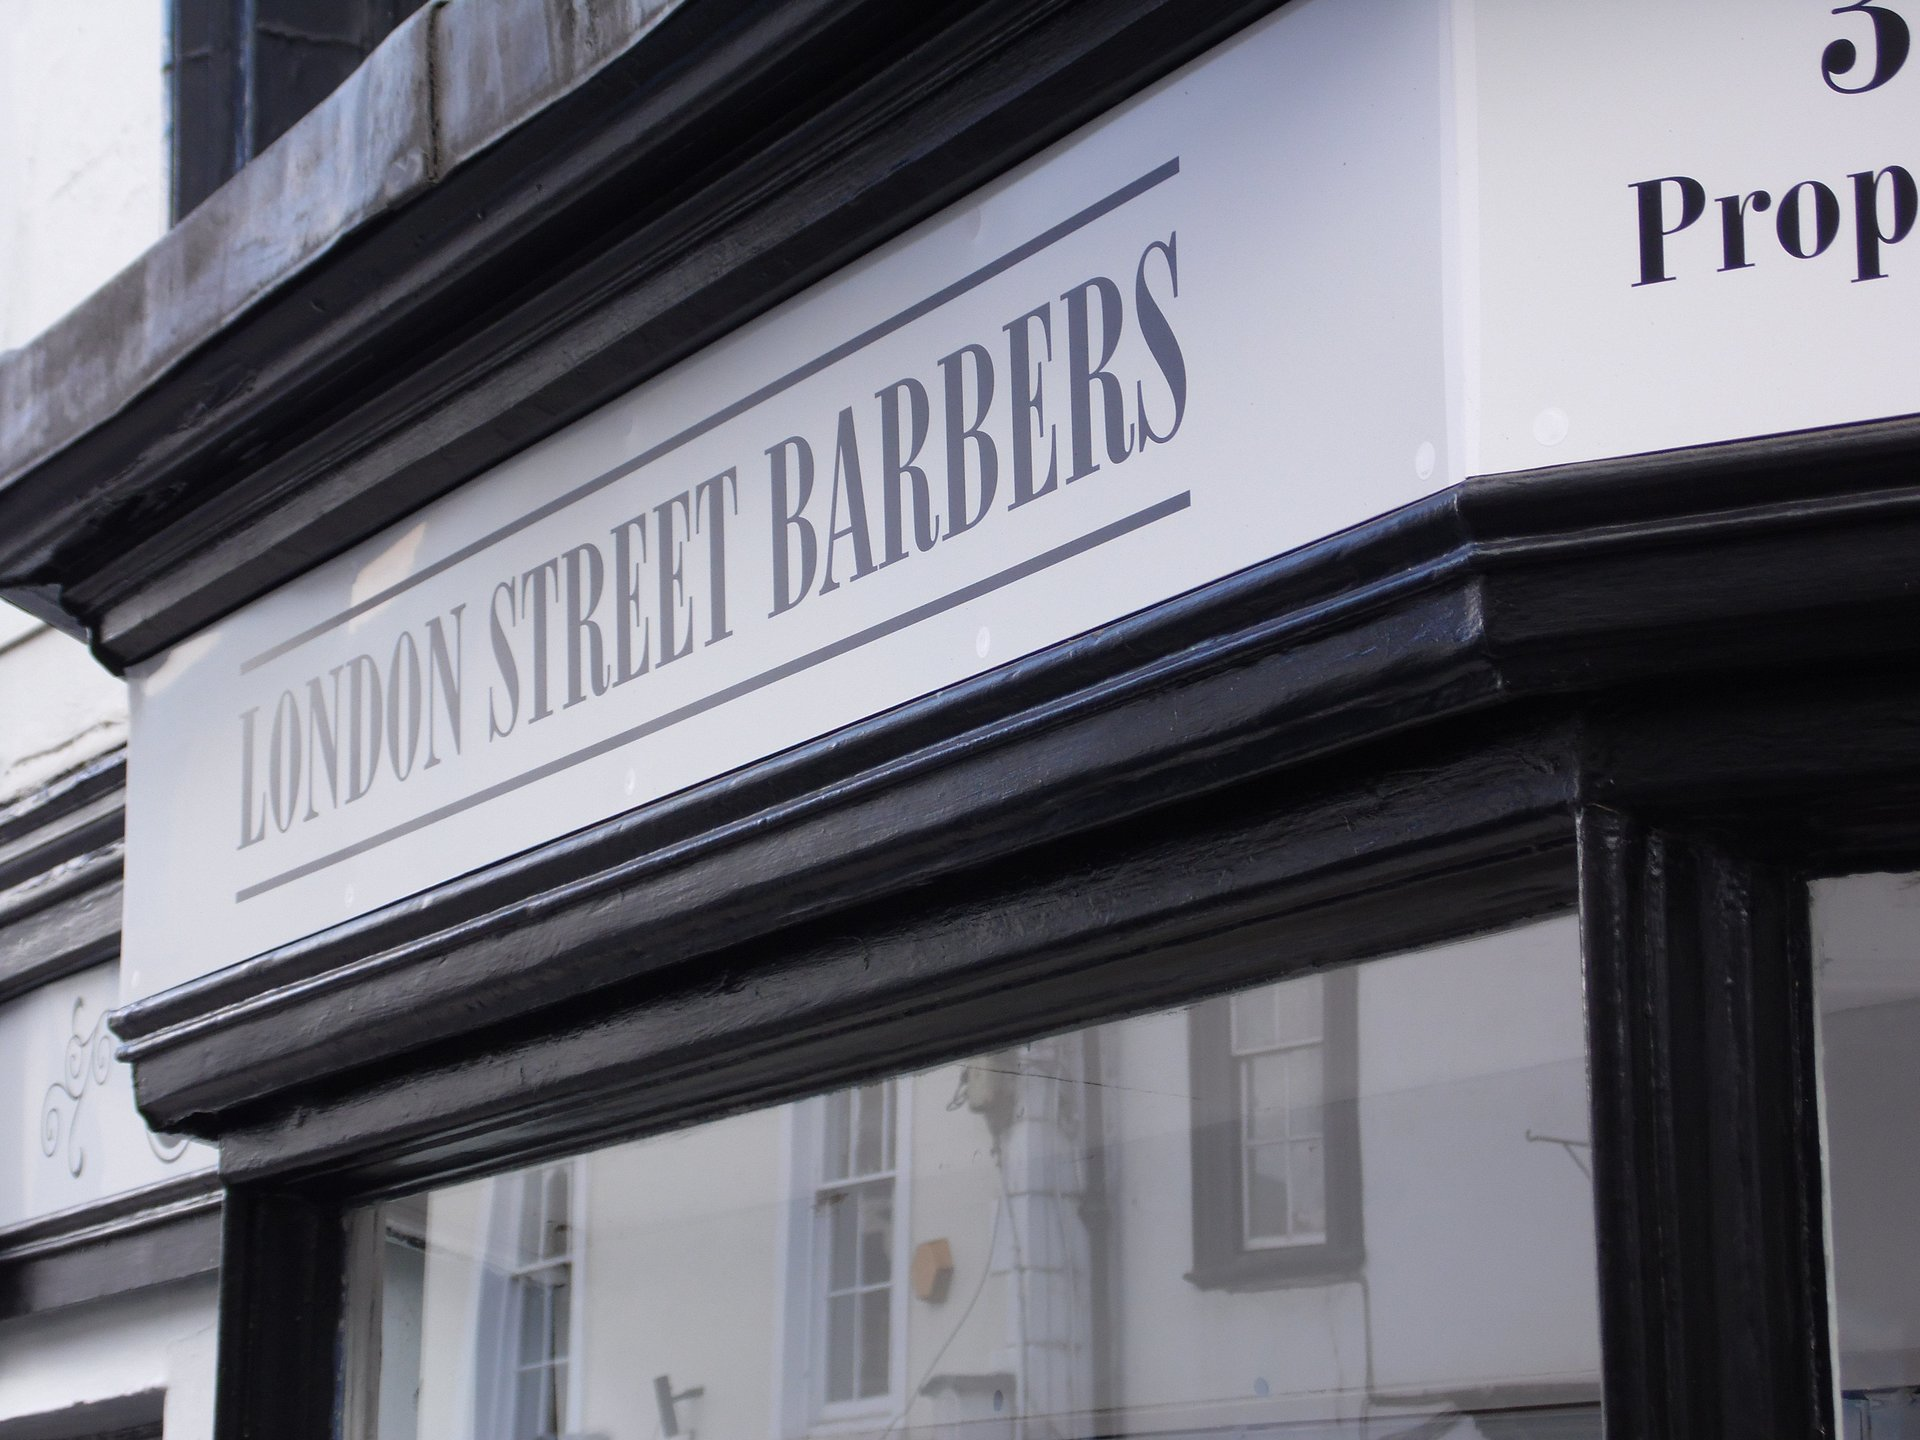 Retail signage - London Street Barbers - Oxford and Swindon